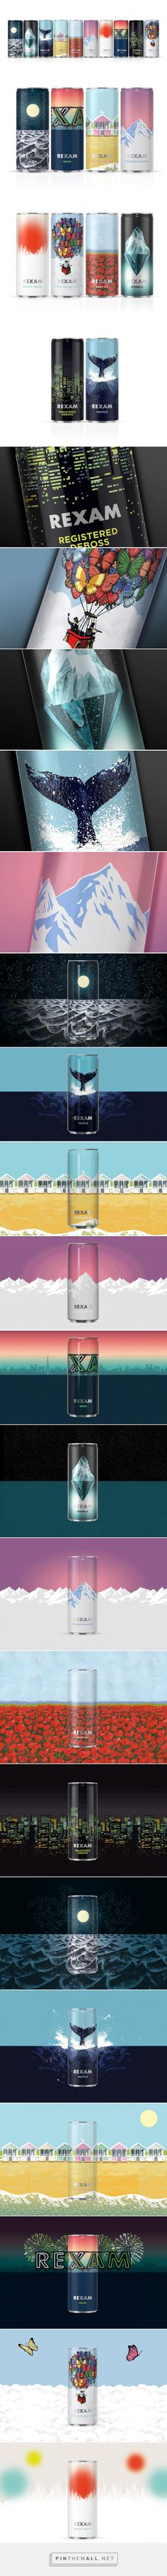 Rexam New Horizons can packaging designed by Dragon Rouge - http://www.packagingoftheworld.com/…/rexam-new-horizons.html